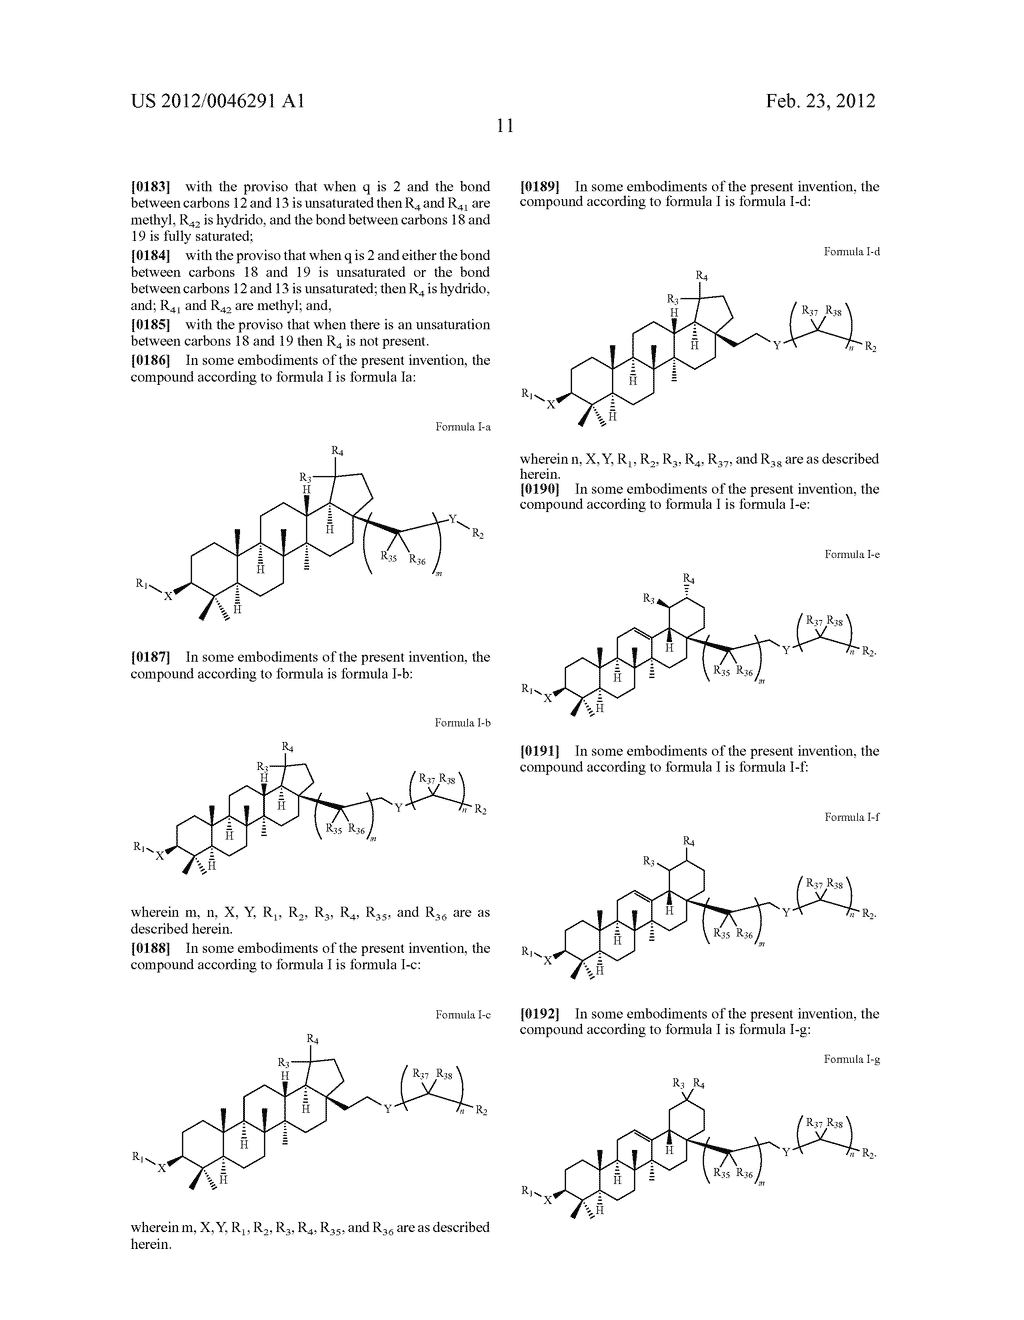 Extended Triterpene Derivatives - diagram, schematic, and image 13